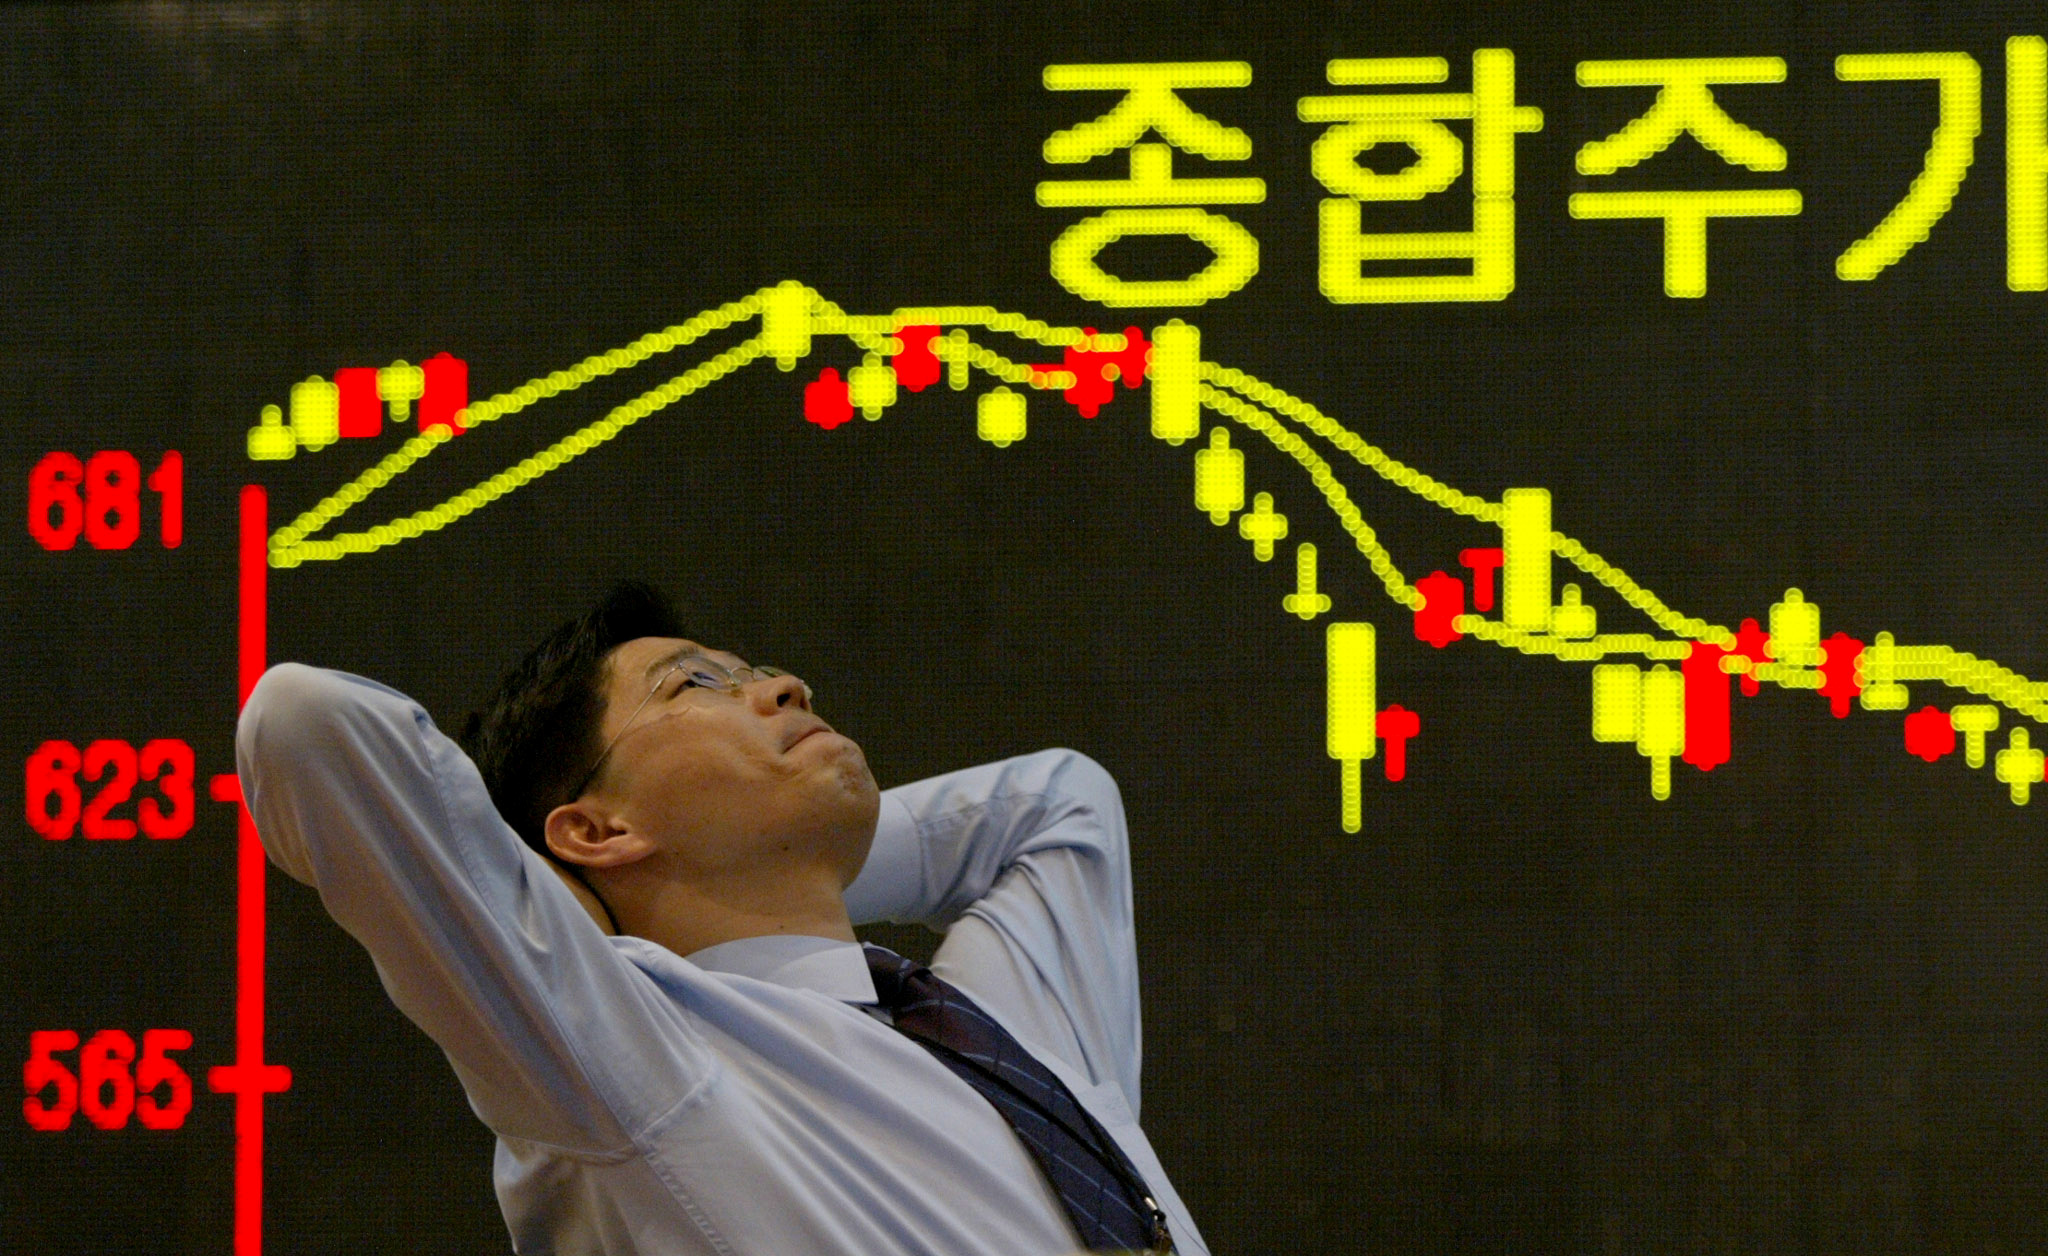 FILE PHOTO: A South Korean employee of a securities firm reacts in front of a graph showing stock price in Seoul March 11, 2003. /File photo - S1AETLECOXAA